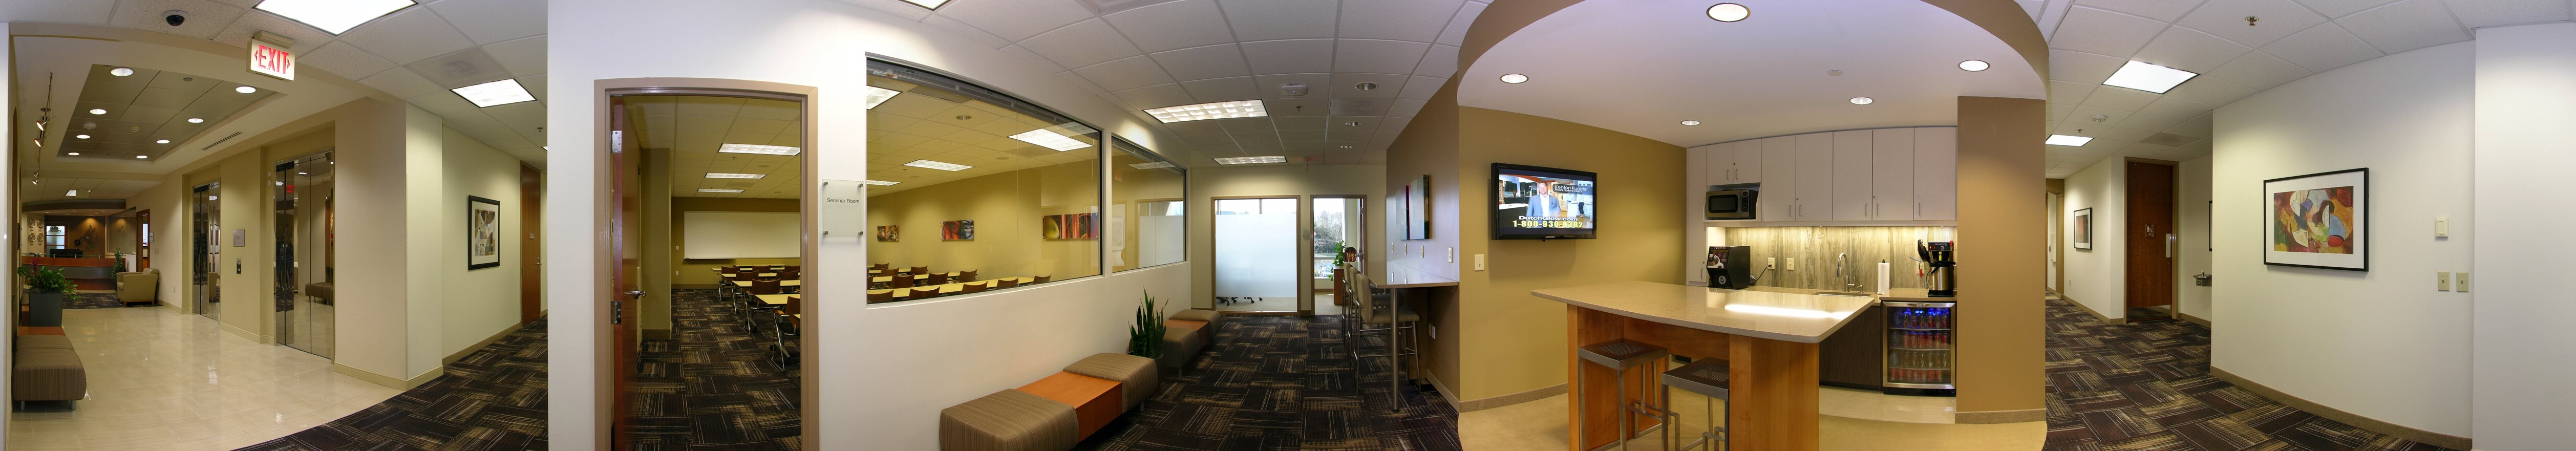 Office Space in Suite 300 15720 Brixham Hill Avenue Ballantyne